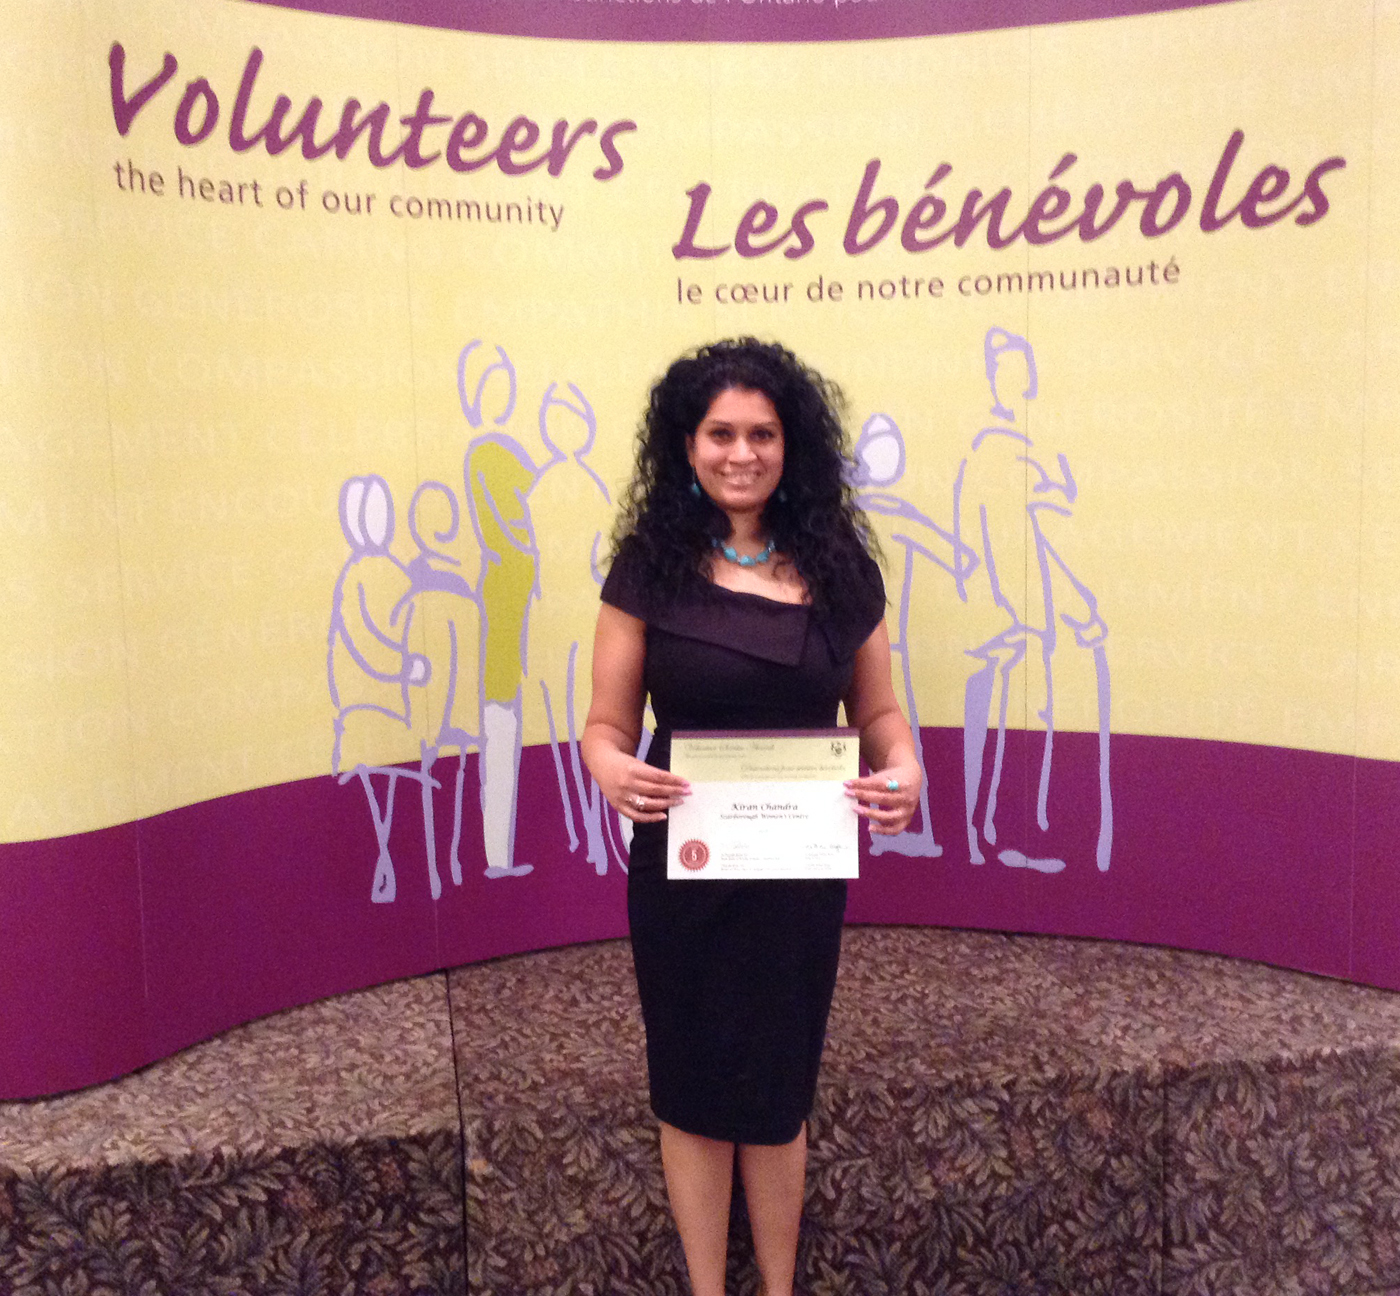 South Asian woman volunteer